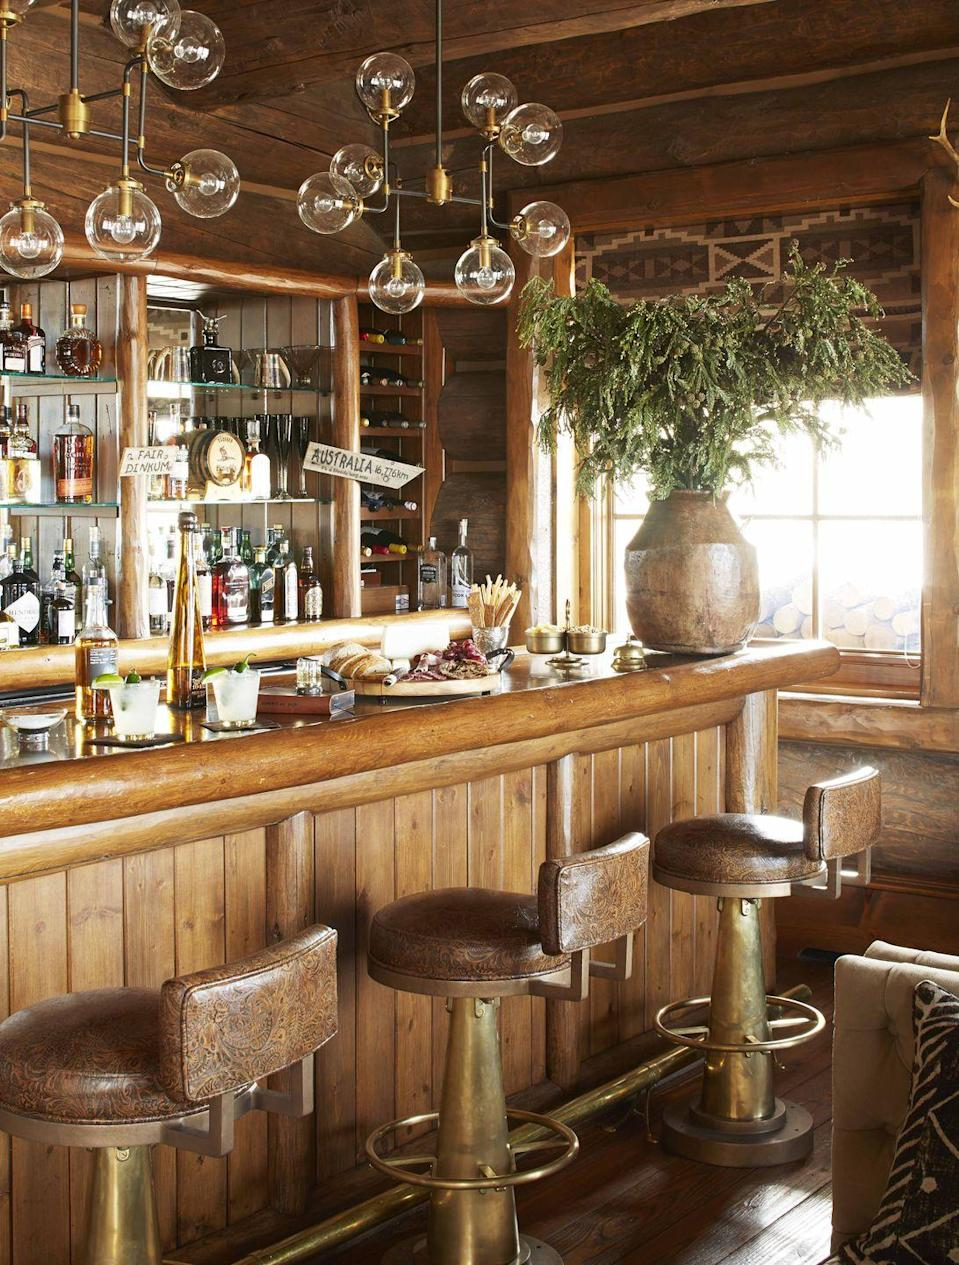 """<p>At their Colorado ranch, pro golfer Greg Norman and his wife Kirsten, an interior designer, end their horseback riding and snowmobiling-filled days with drinks at their cozy bar. A pair of industrial pendants provide sleek contrast to the log walls and bar. The <a href=""""https://www.gilanifurniture.com/"""" rel=""""nofollow noopener"""" target=""""_blank"""" data-ylk=""""slk:Gilani"""" class=""""link rapid-noclick-resp"""">Gilani</a> barstools are covered in a tooled leather by the Ranch Home Outfitters. </p><p><a class=""""link rapid-noclick-resp"""" href=""""https://go.redirectingat.com?id=74968X1596630&url=https%3A%2F%2Fwww.etsy.com%2Flisting%2F785290084%2Fvintage-condiment-server-caddy-bar%3Fgpla%3D1%26gao%3D1&sref=https%3A%2F%2Fwww.veranda.com%2Fdecorating-ideas%2Fg28837805%2Fhome-bar-ideas%2F"""" rel=""""nofollow noopener"""" target=""""_blank"""" data-ylk=""""slk:Find Similar Vintage Bar Snack Caddies Here"""">Find Similar Vintage Bar Snack Caddies Here</a></p>"""